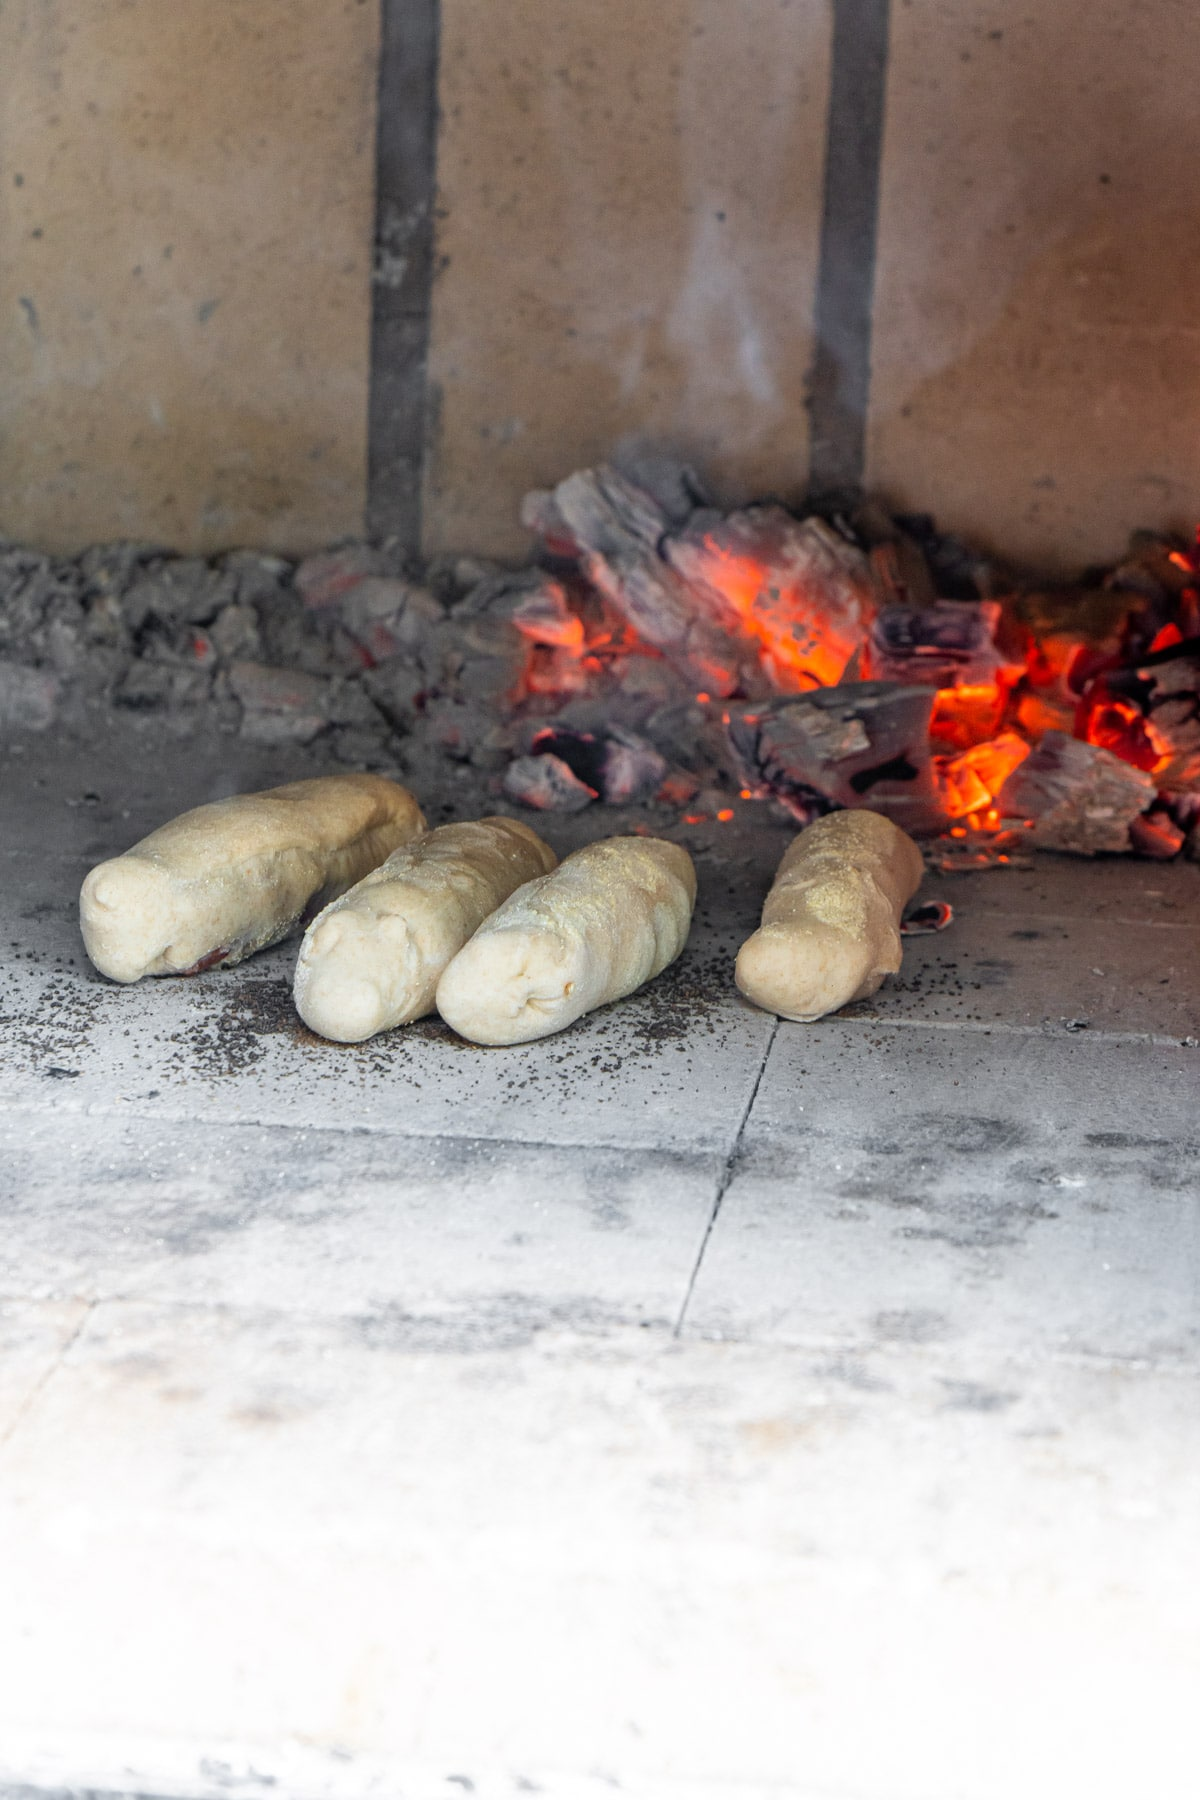 Four pepperoni rolls in a brick oven with fire in the background